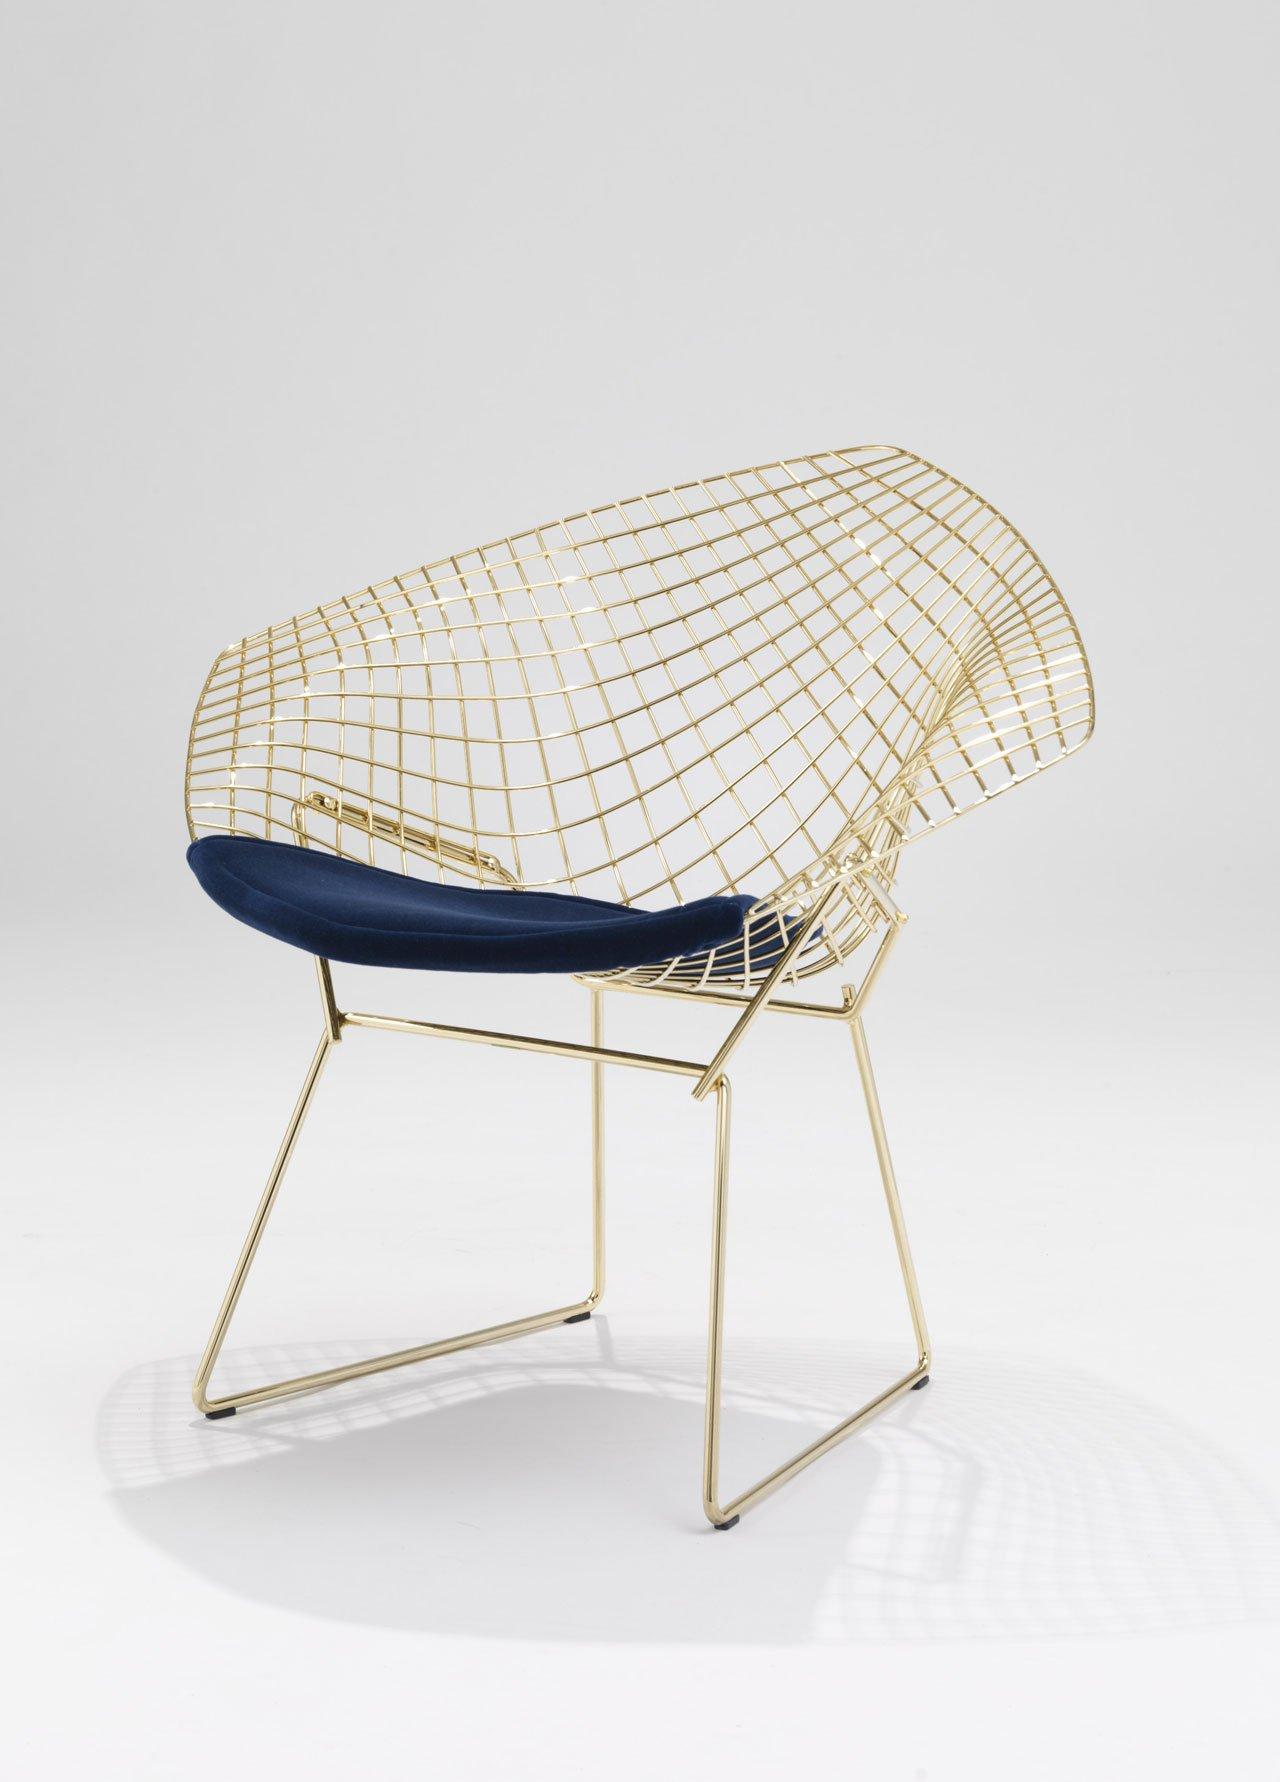 Diamond Chair in cowhide and with a new bronze finish by Harry Bertoia for Knoll. Photo by Ezio Prandini.